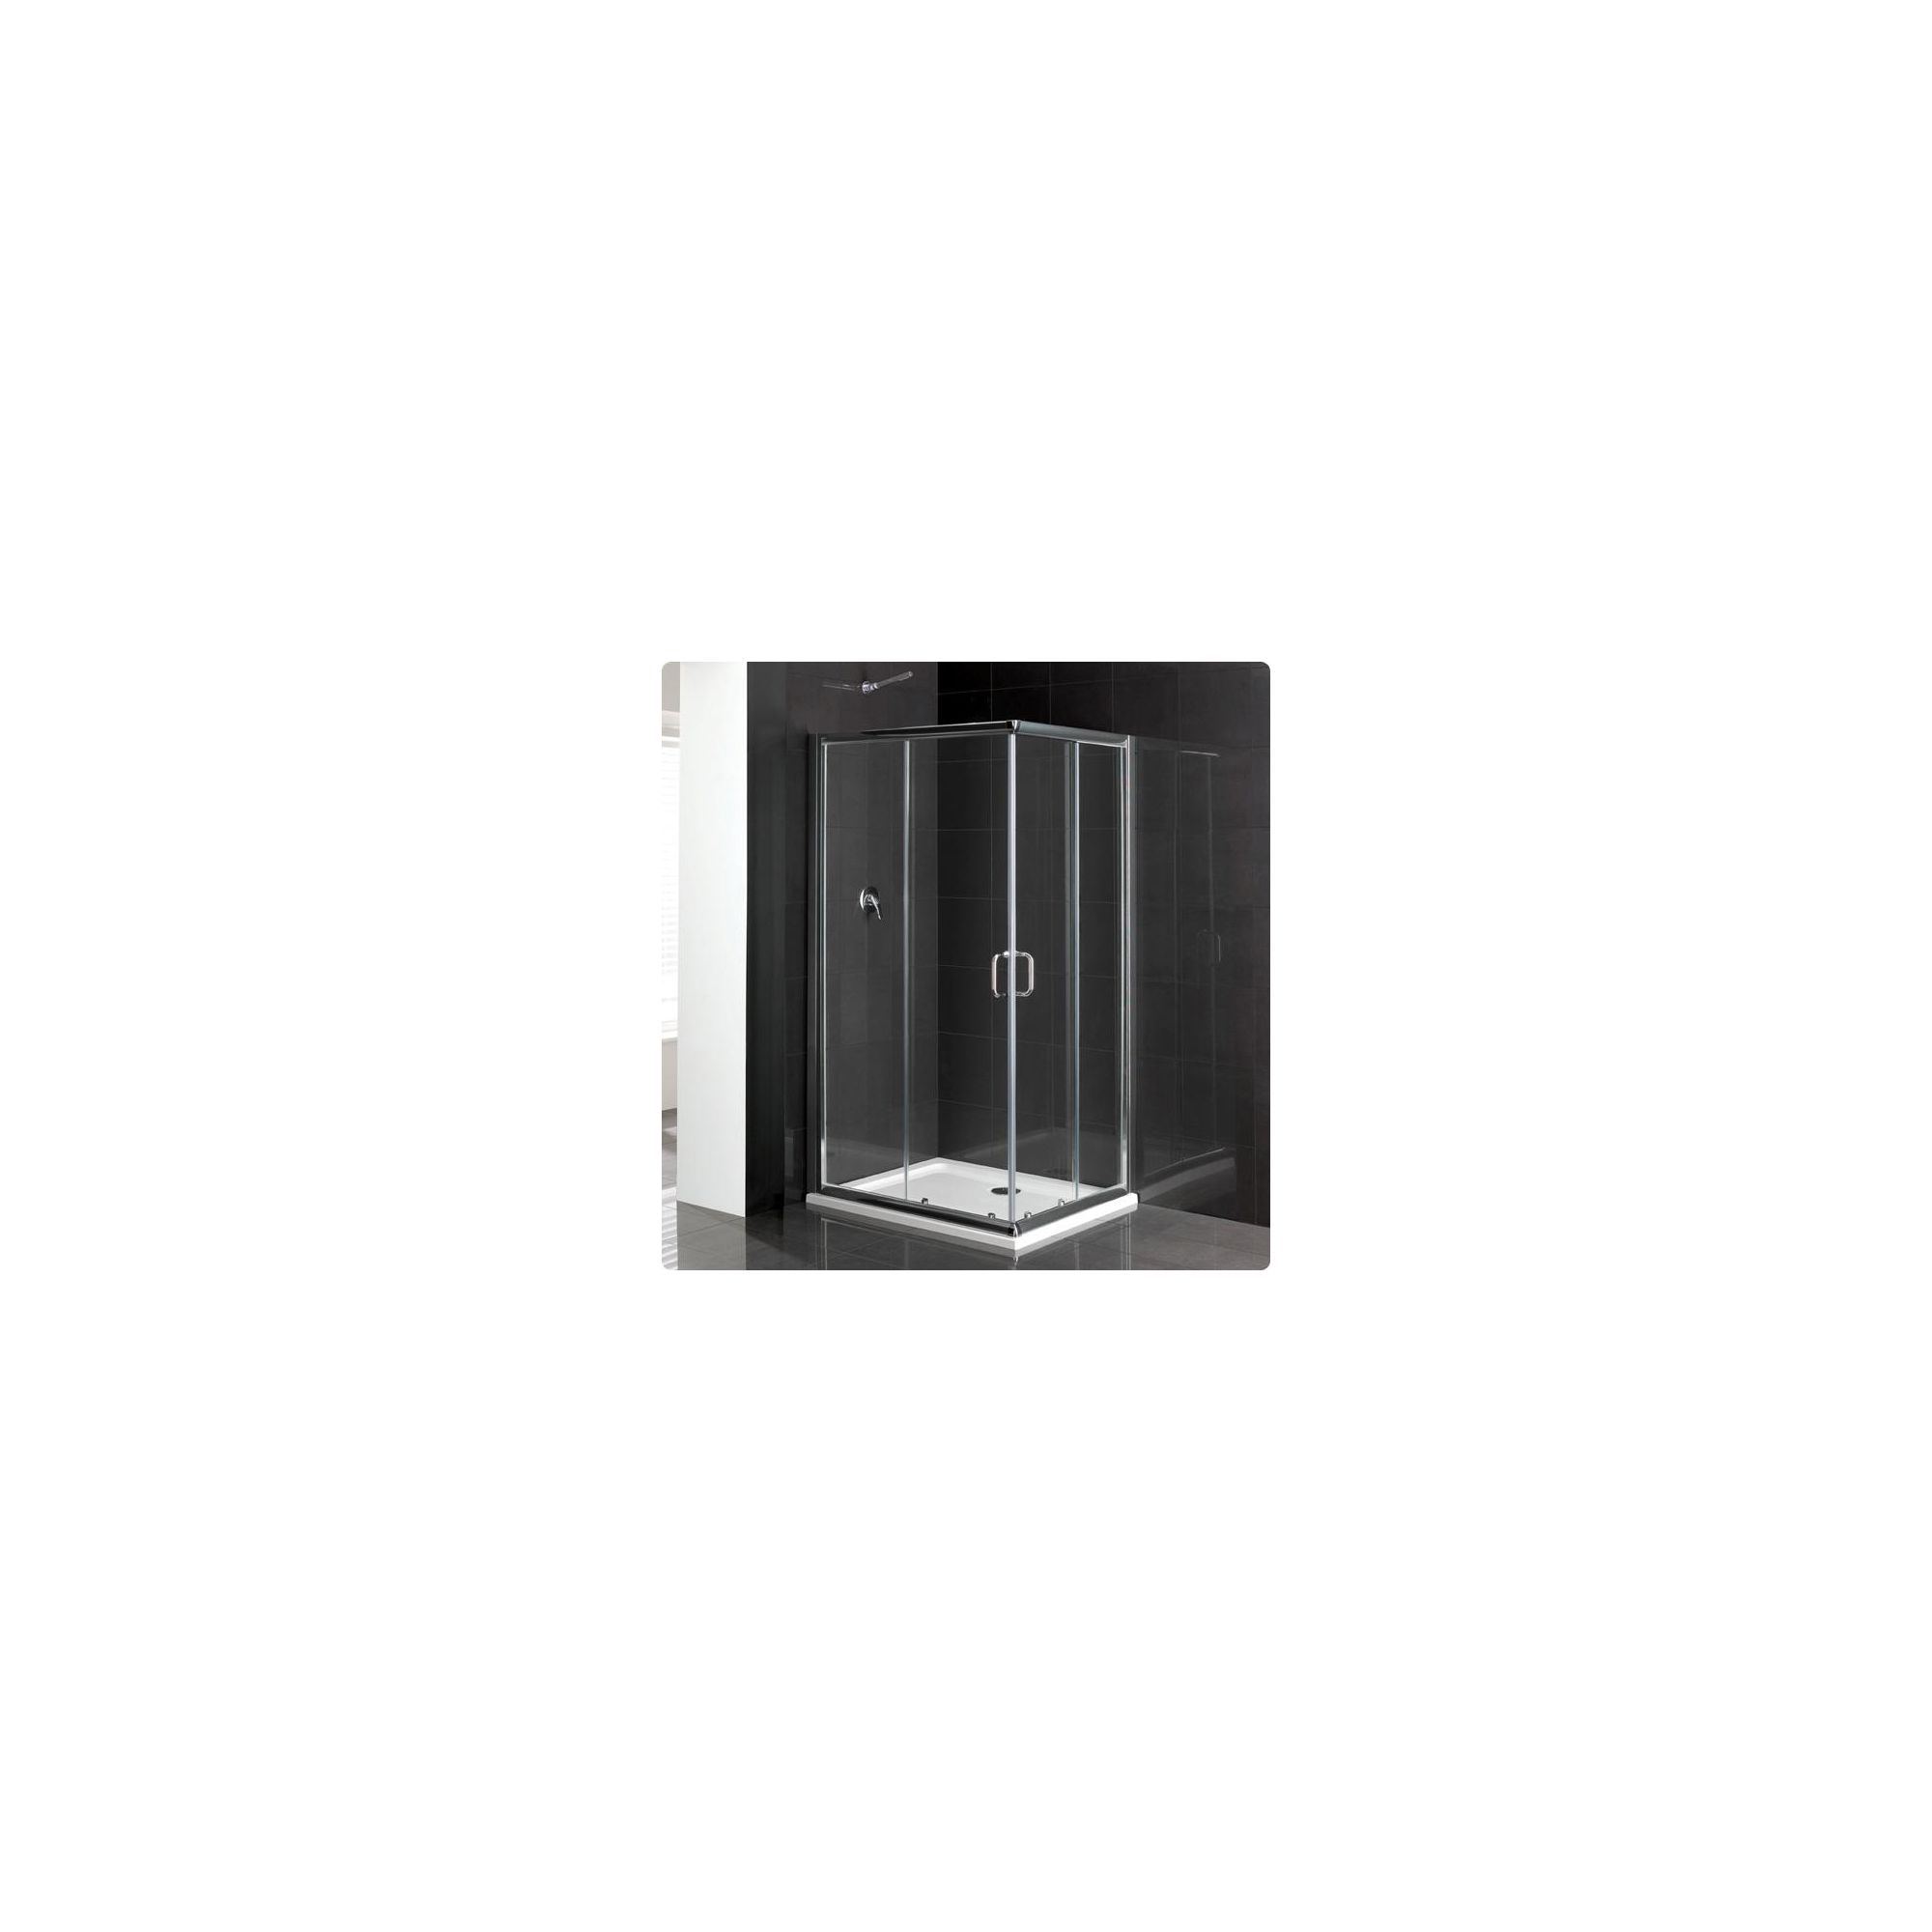 Duchy Elite Silver Corner Entry Shower Enclosure 800mm x 800mm, Standard Tray, 6mm Glass at Tesco Direct